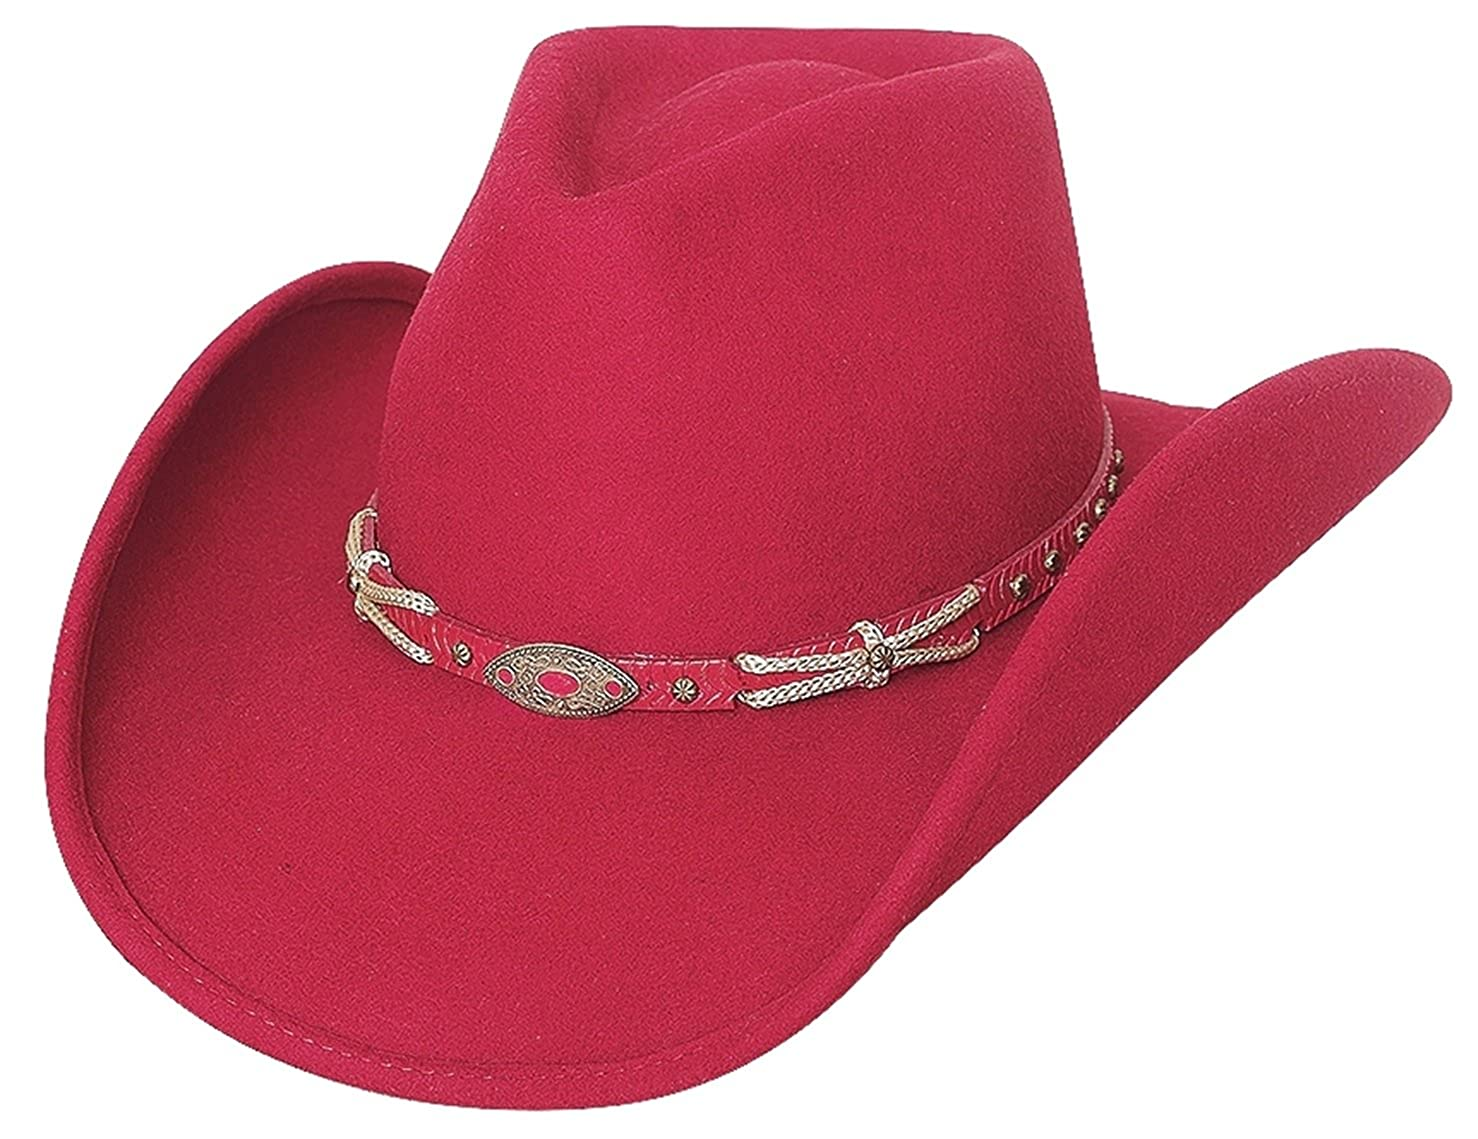 Montecarlo Bullhide Hats EMOTIONALLY CHARGED Premium Wool Cowboy Western Hat 0678R